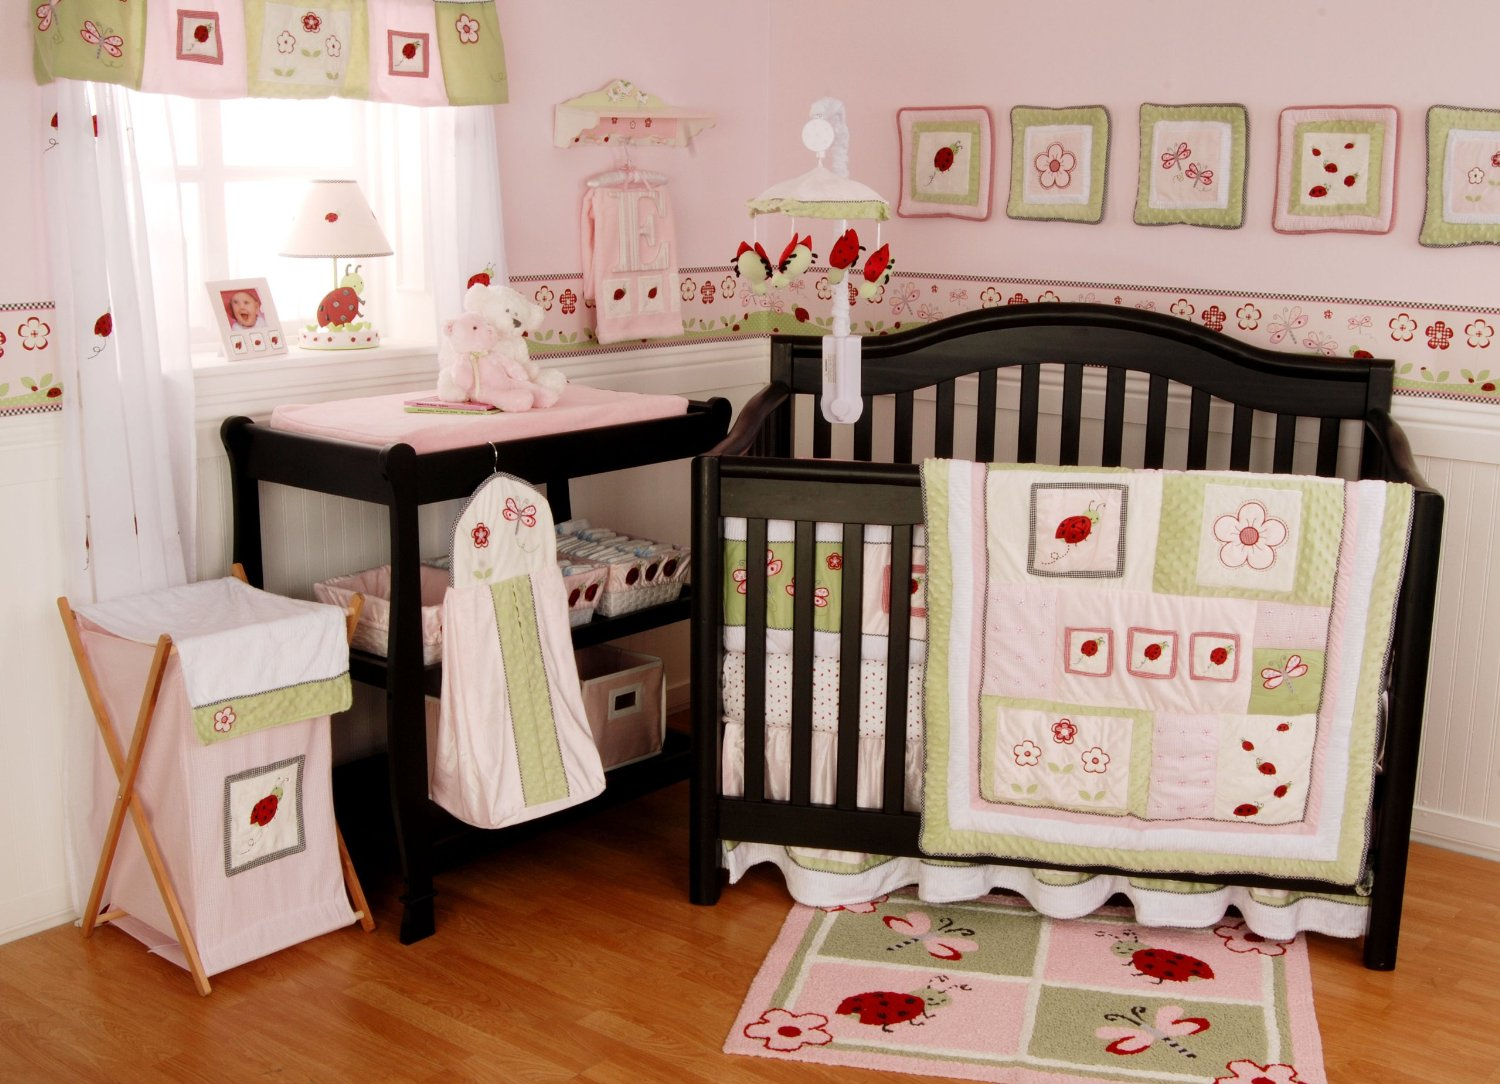 Crib size quilts for sale - Grey Cribs For Sale Cheap Cribs Cheap Crib Furniture Sets